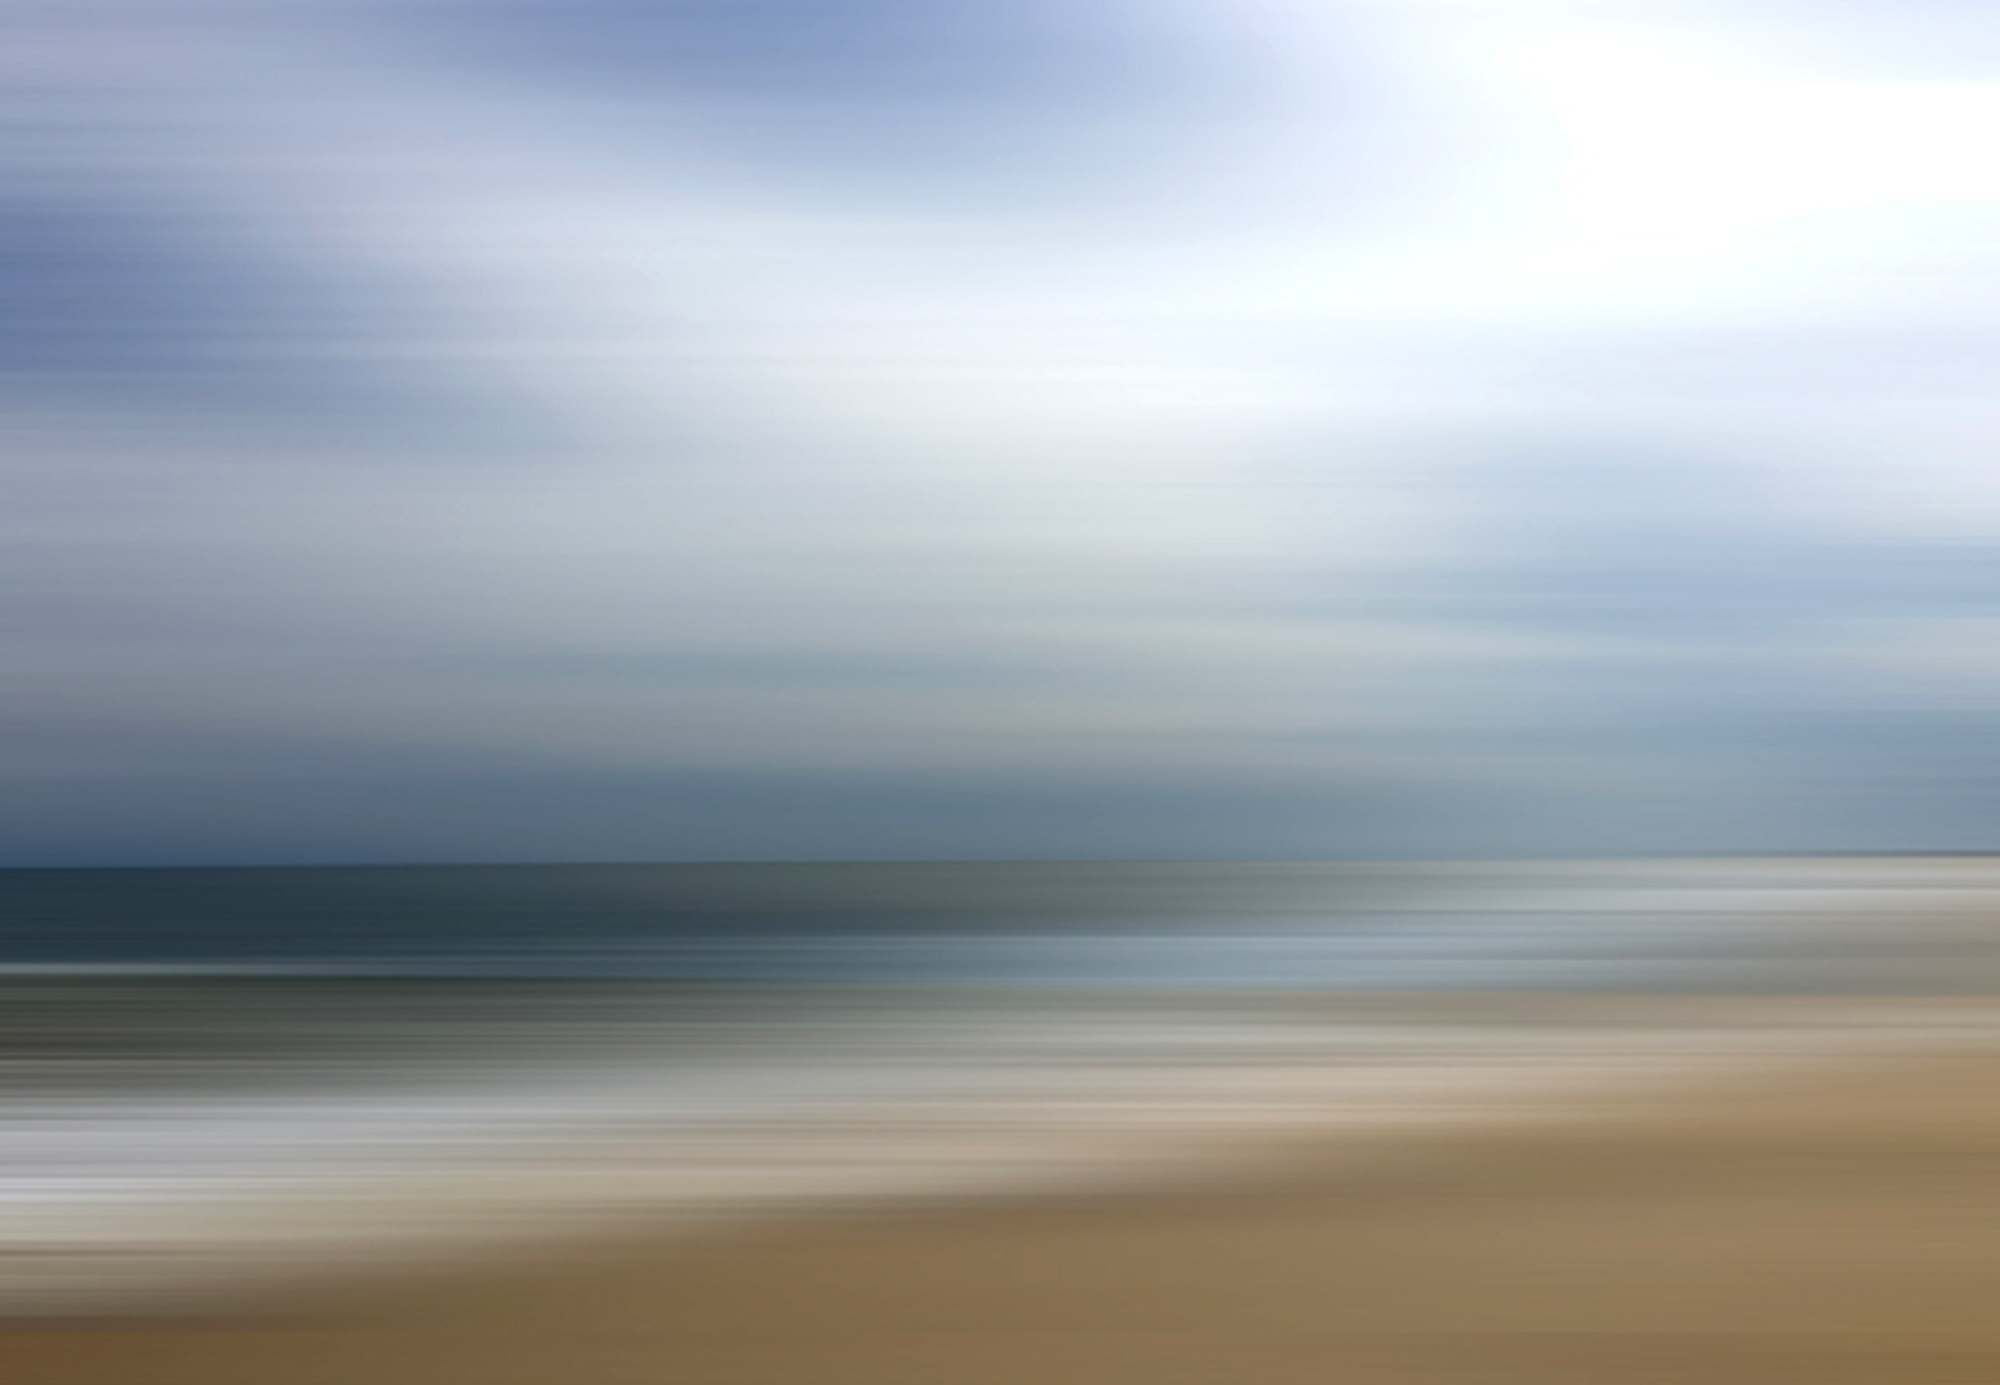 Sagaponack Sea, 2016, photograph on plexiglass, 42 x 60 in, edition of 10 (8 available), $9,500  (other sizes available, priced accordingly)